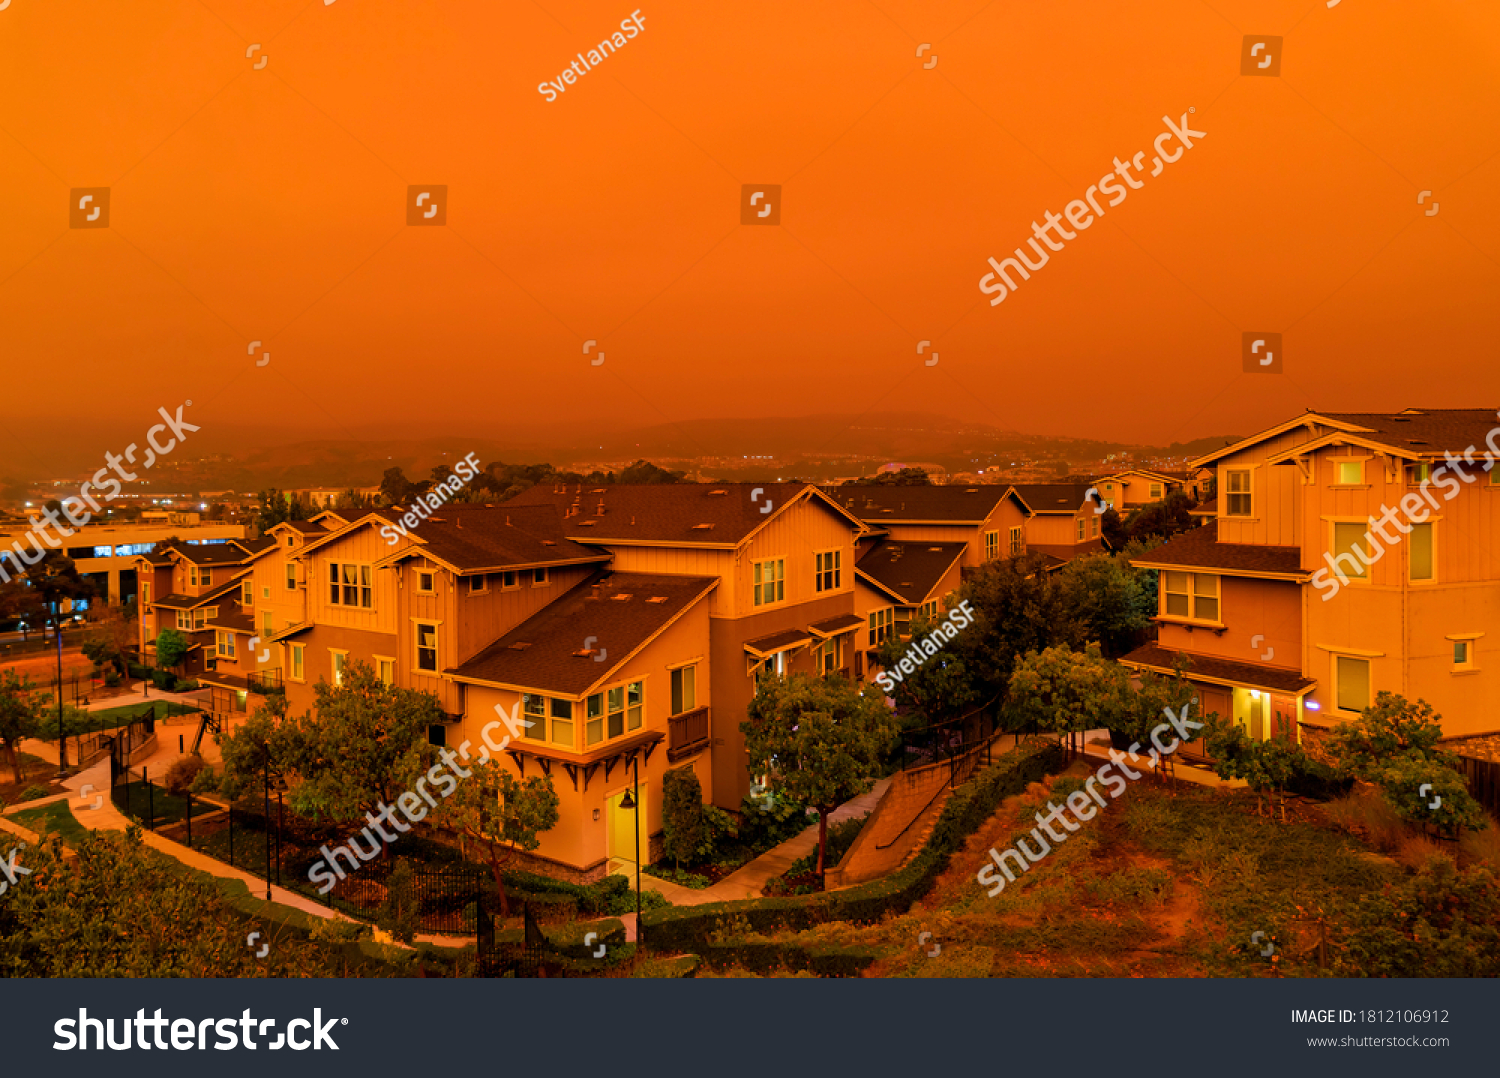 Thick orange haze above San Francisco on September 9 2020 from record wildfires in California, daytime view of ash and smoke floating over the Bay Area #1812106912